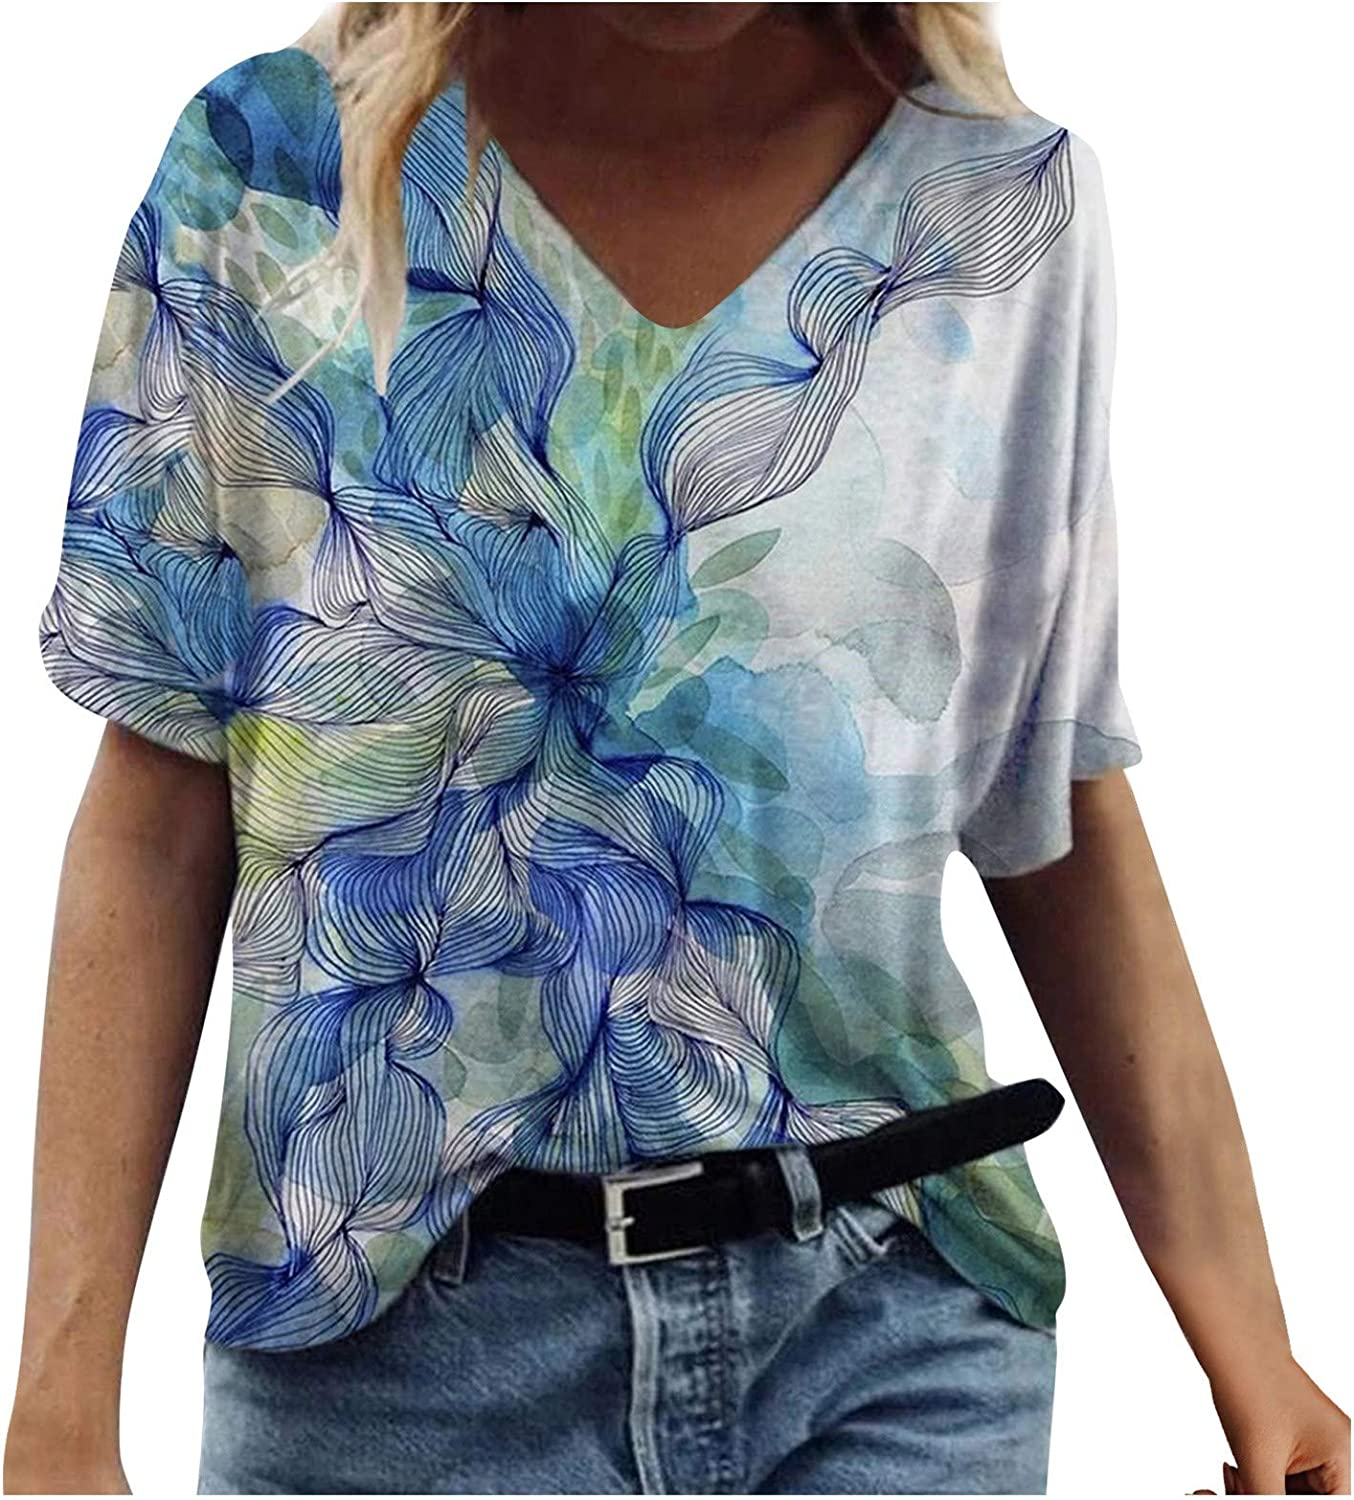 MASZONE Summer Tops for Women, Womens Scenic Print V-Neck T-Shirts Casual Short Sleeve Bouse Tops Plus Size Tunic Tee